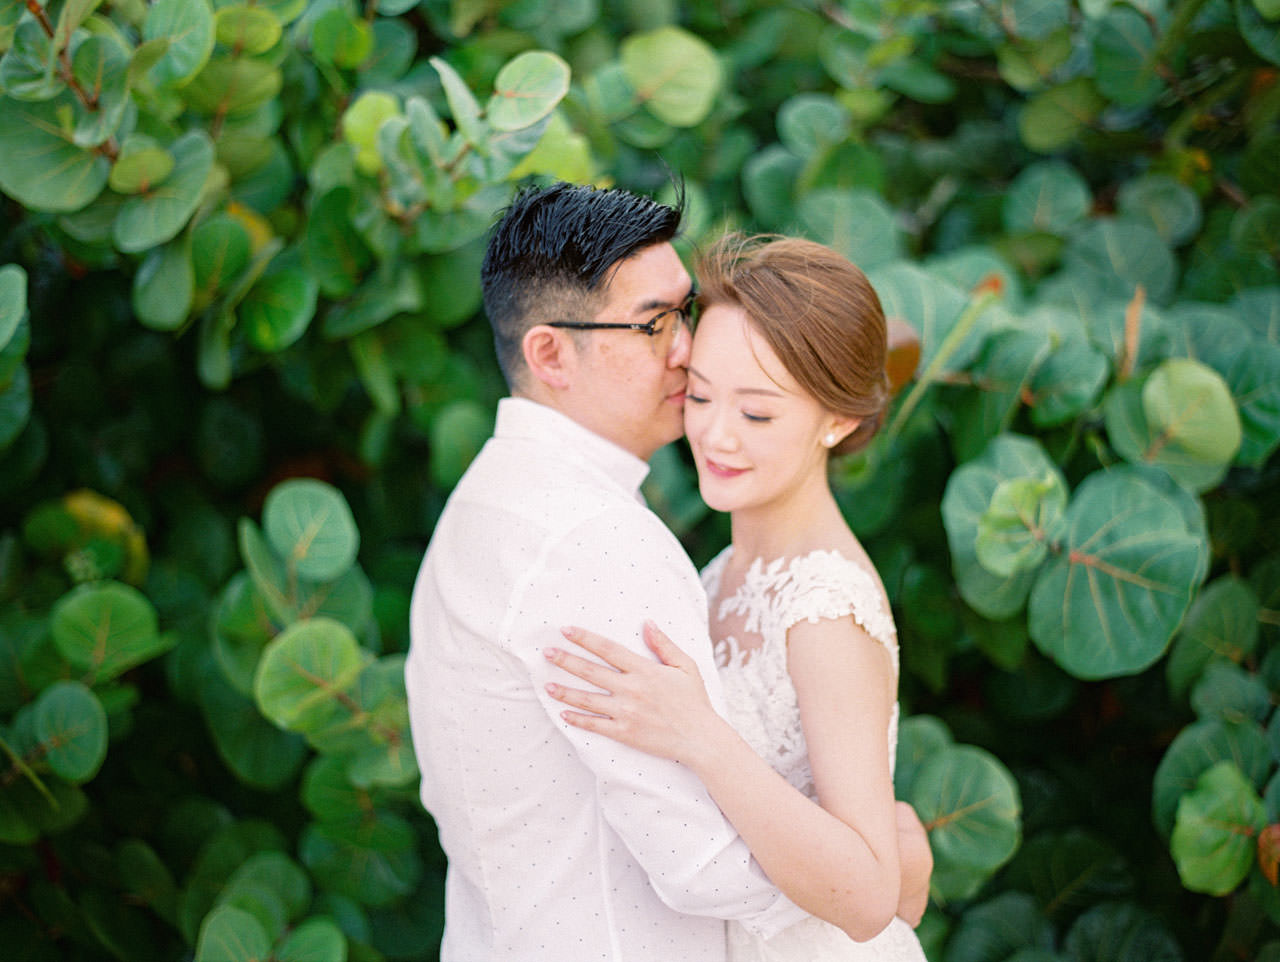 J&K: The Ritz Carlton Bali Beach Prewedding 12